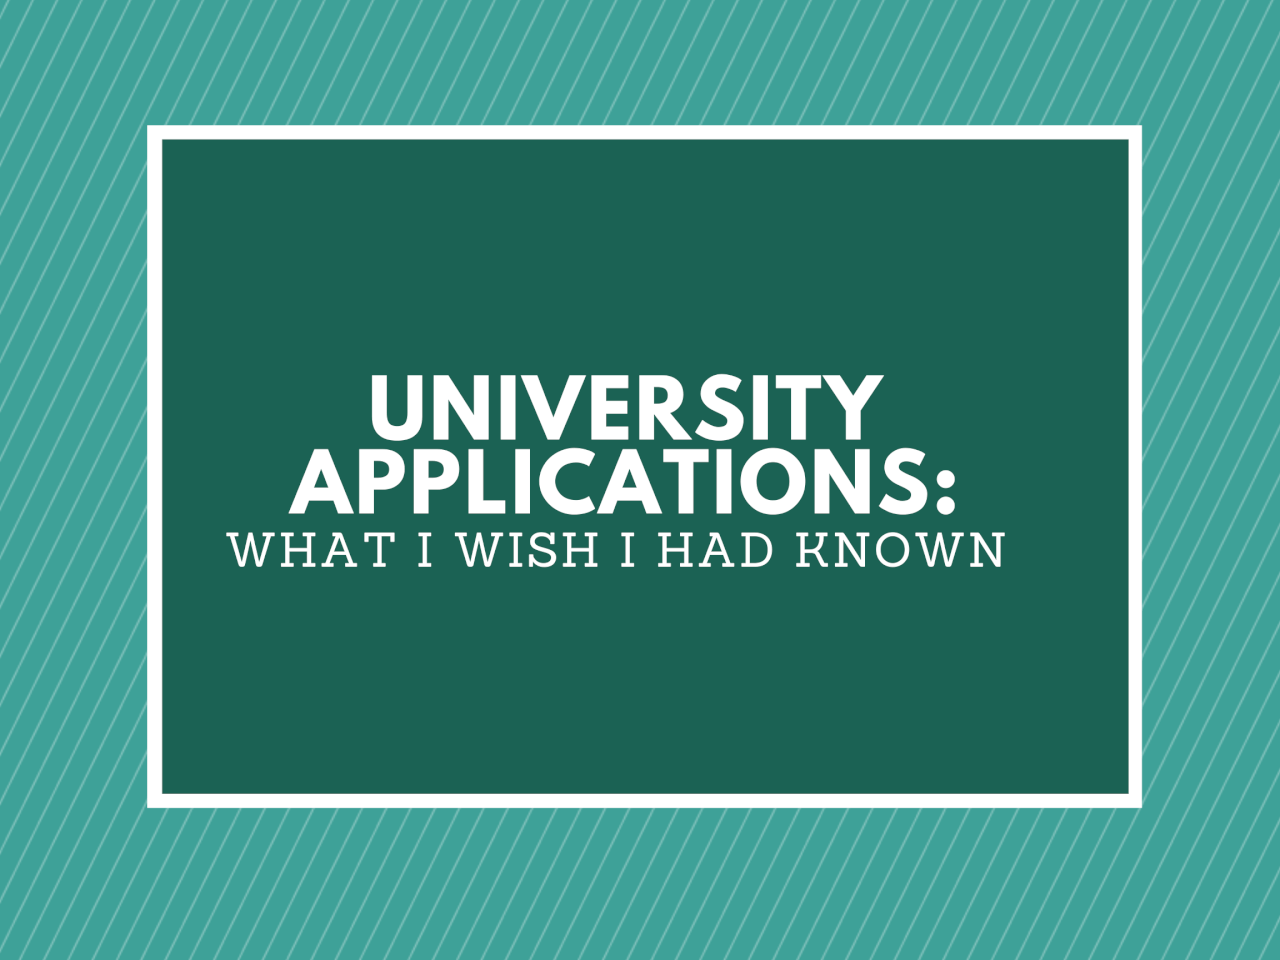 UNIVERSITY APPLICATIONS: WHAT I WISH I HAD KNOWN